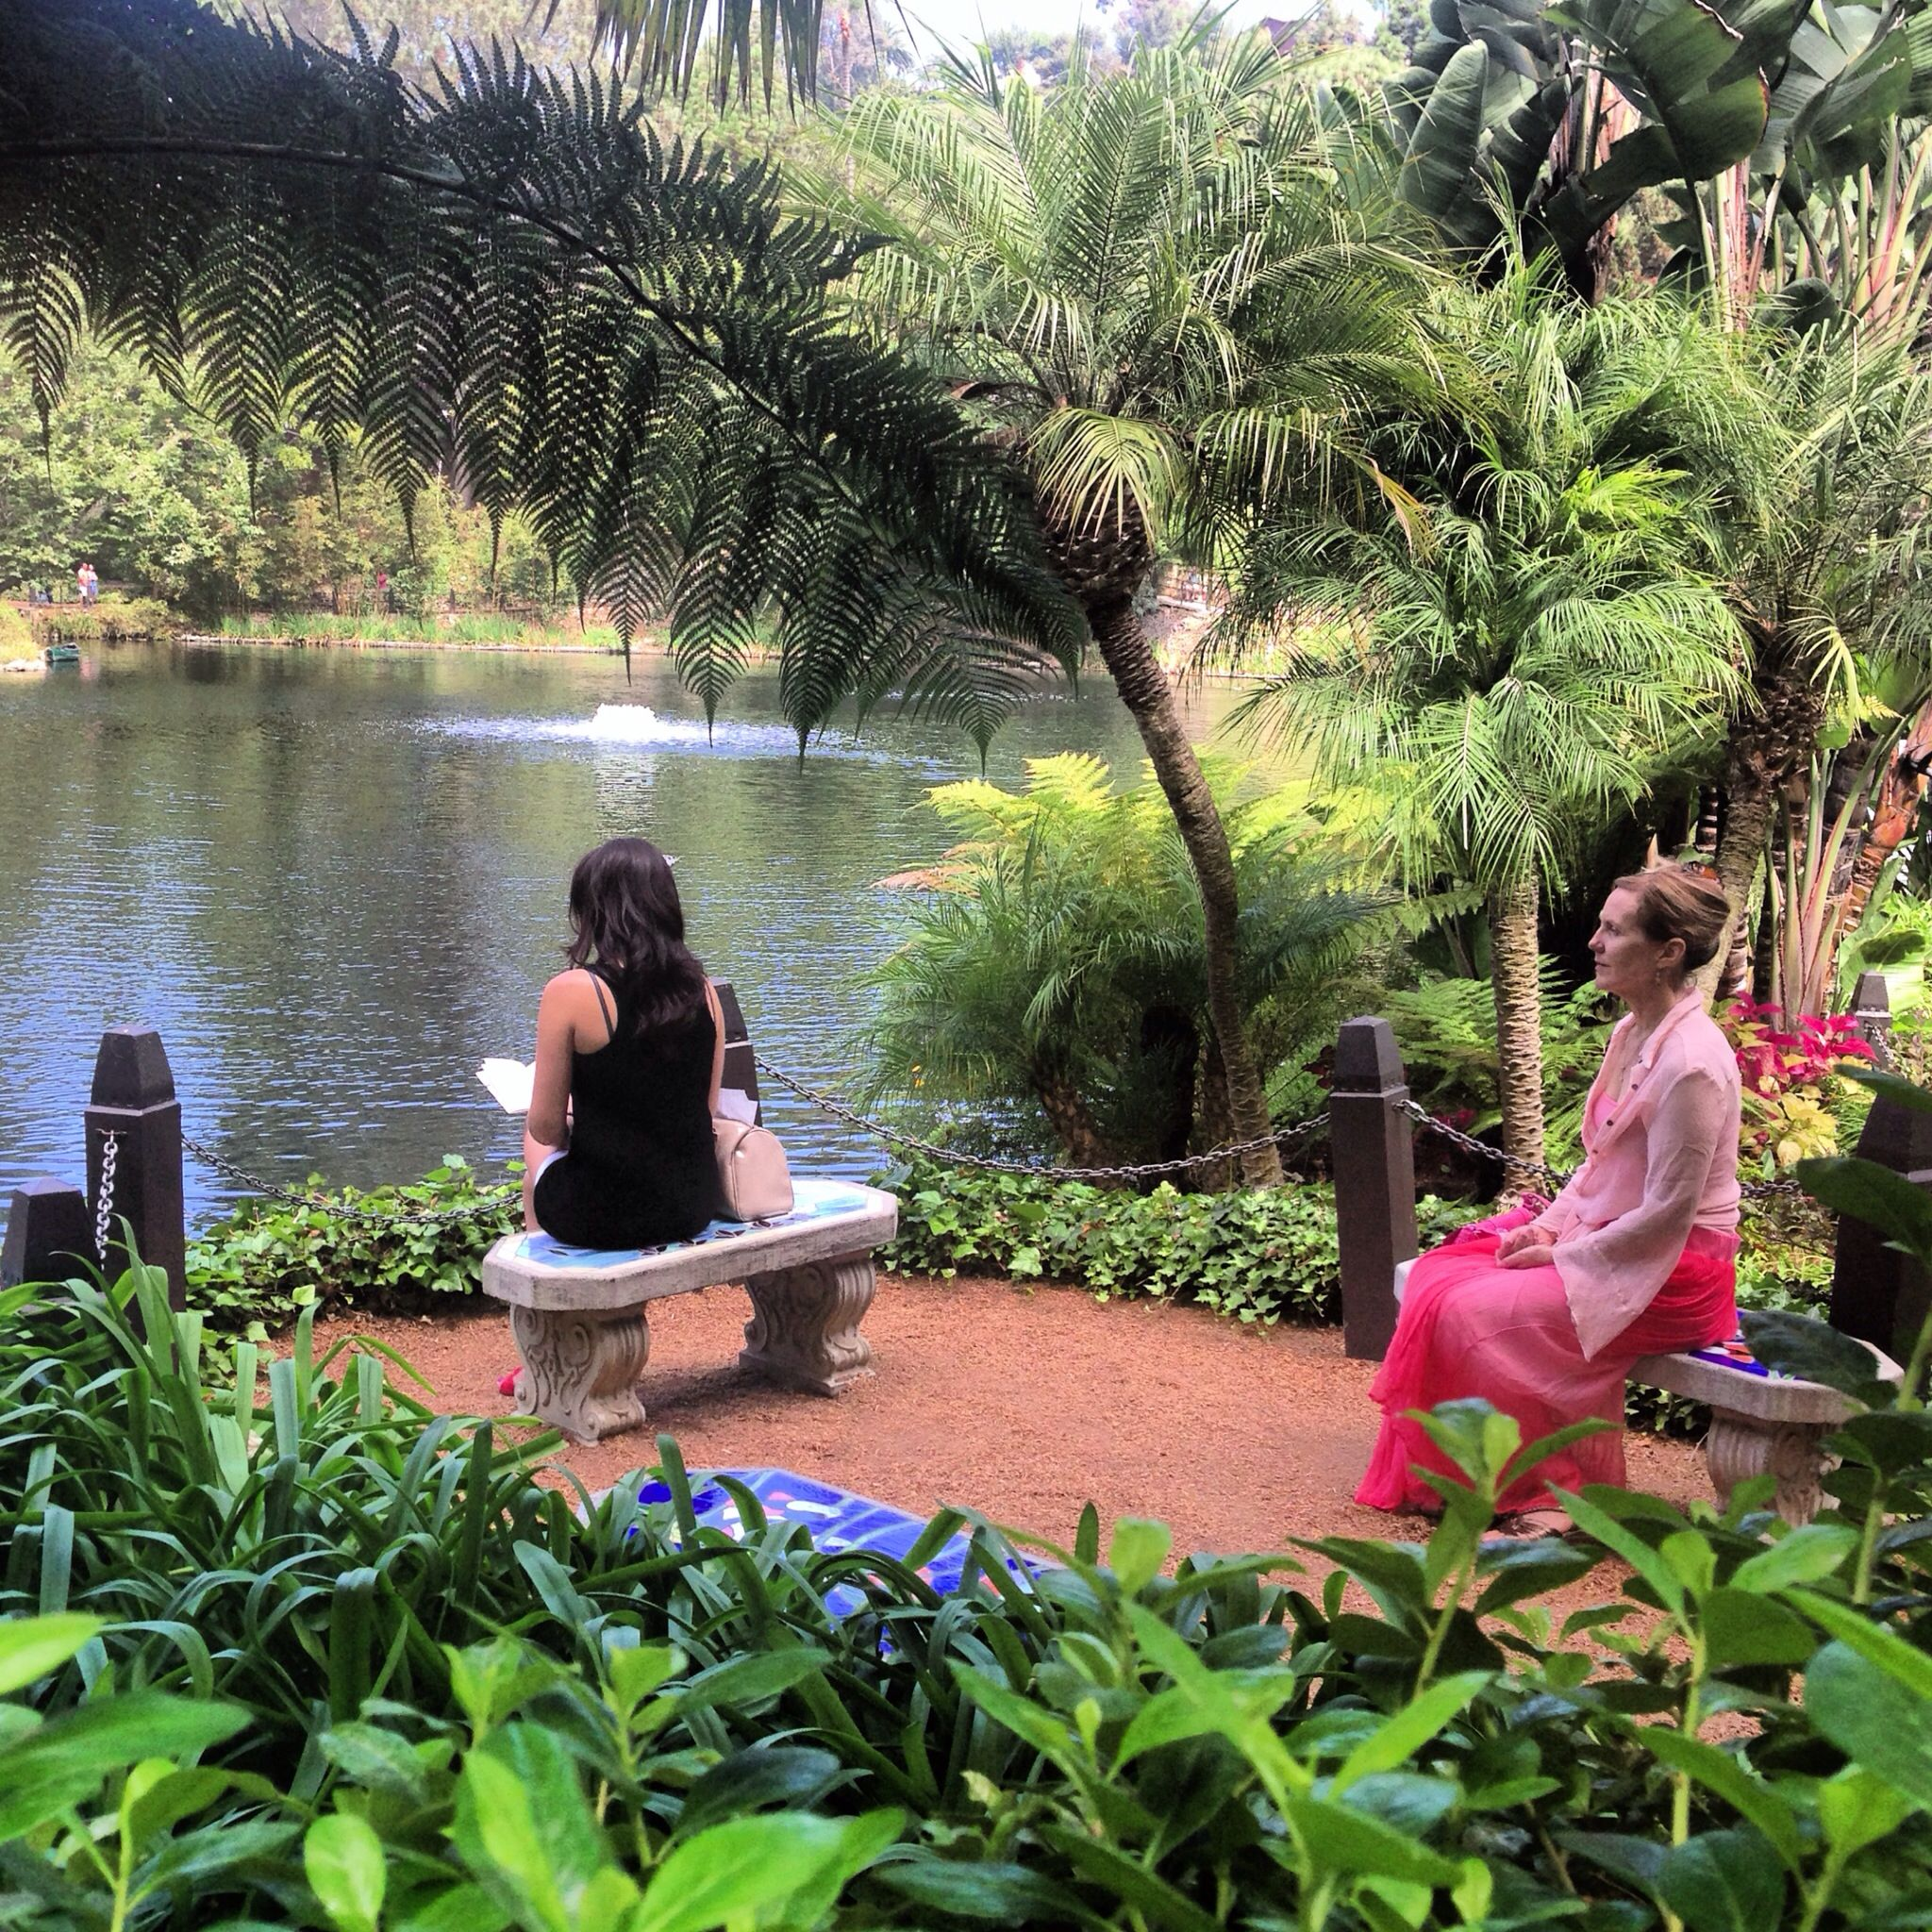 Just A Place To Relax It Looks As Heaven The Self Realization Fellowship Lake Shrine Lies A